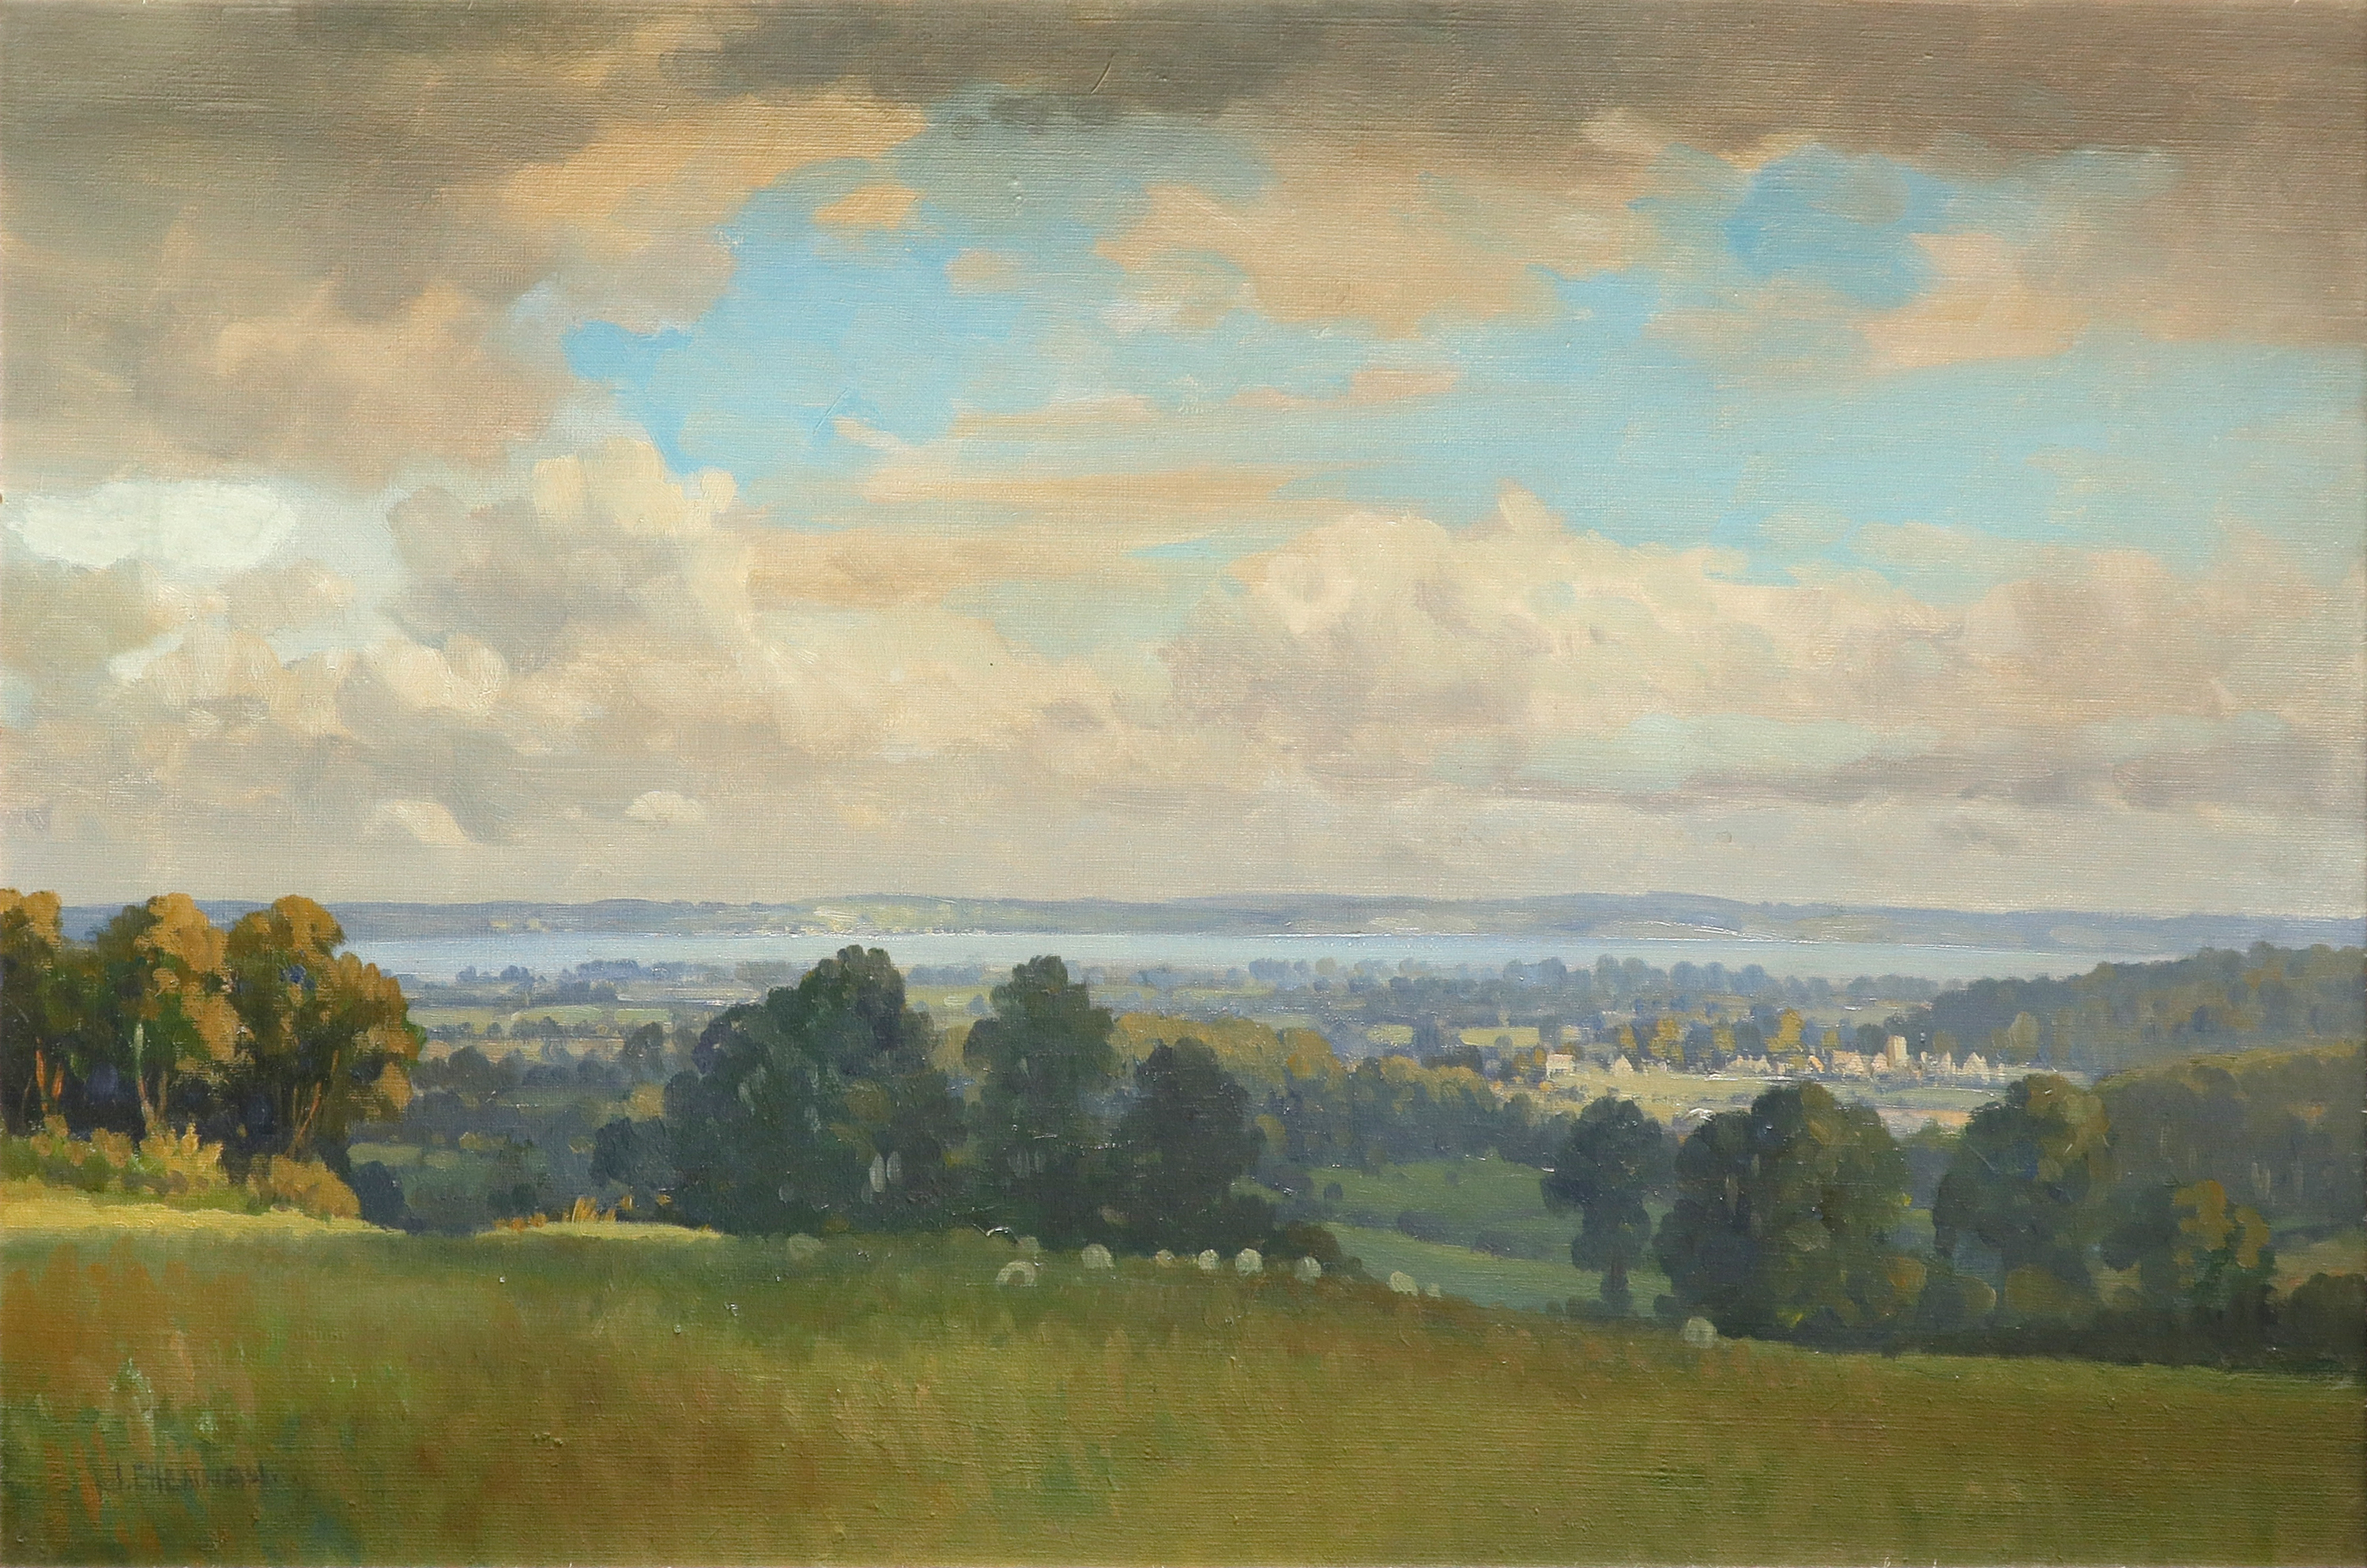 ‡Joseph Edward Hennah (Welsh 1897-1967) Landscape with the River Severn in the distance Signed J.E.